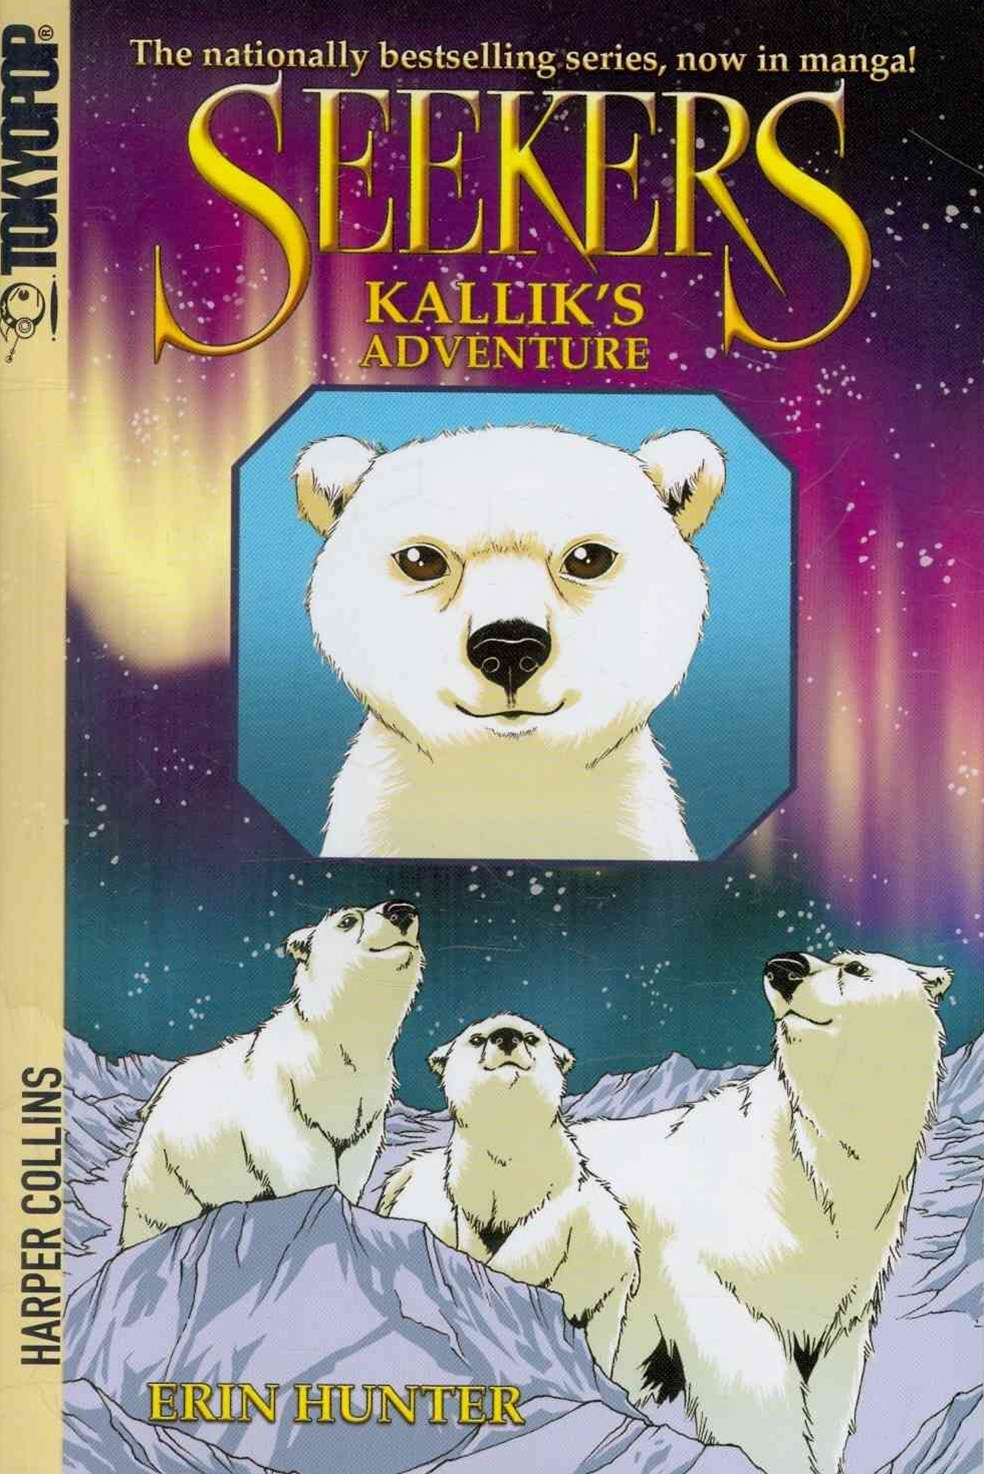 Seekers: Kallik's Adventure [Manga]